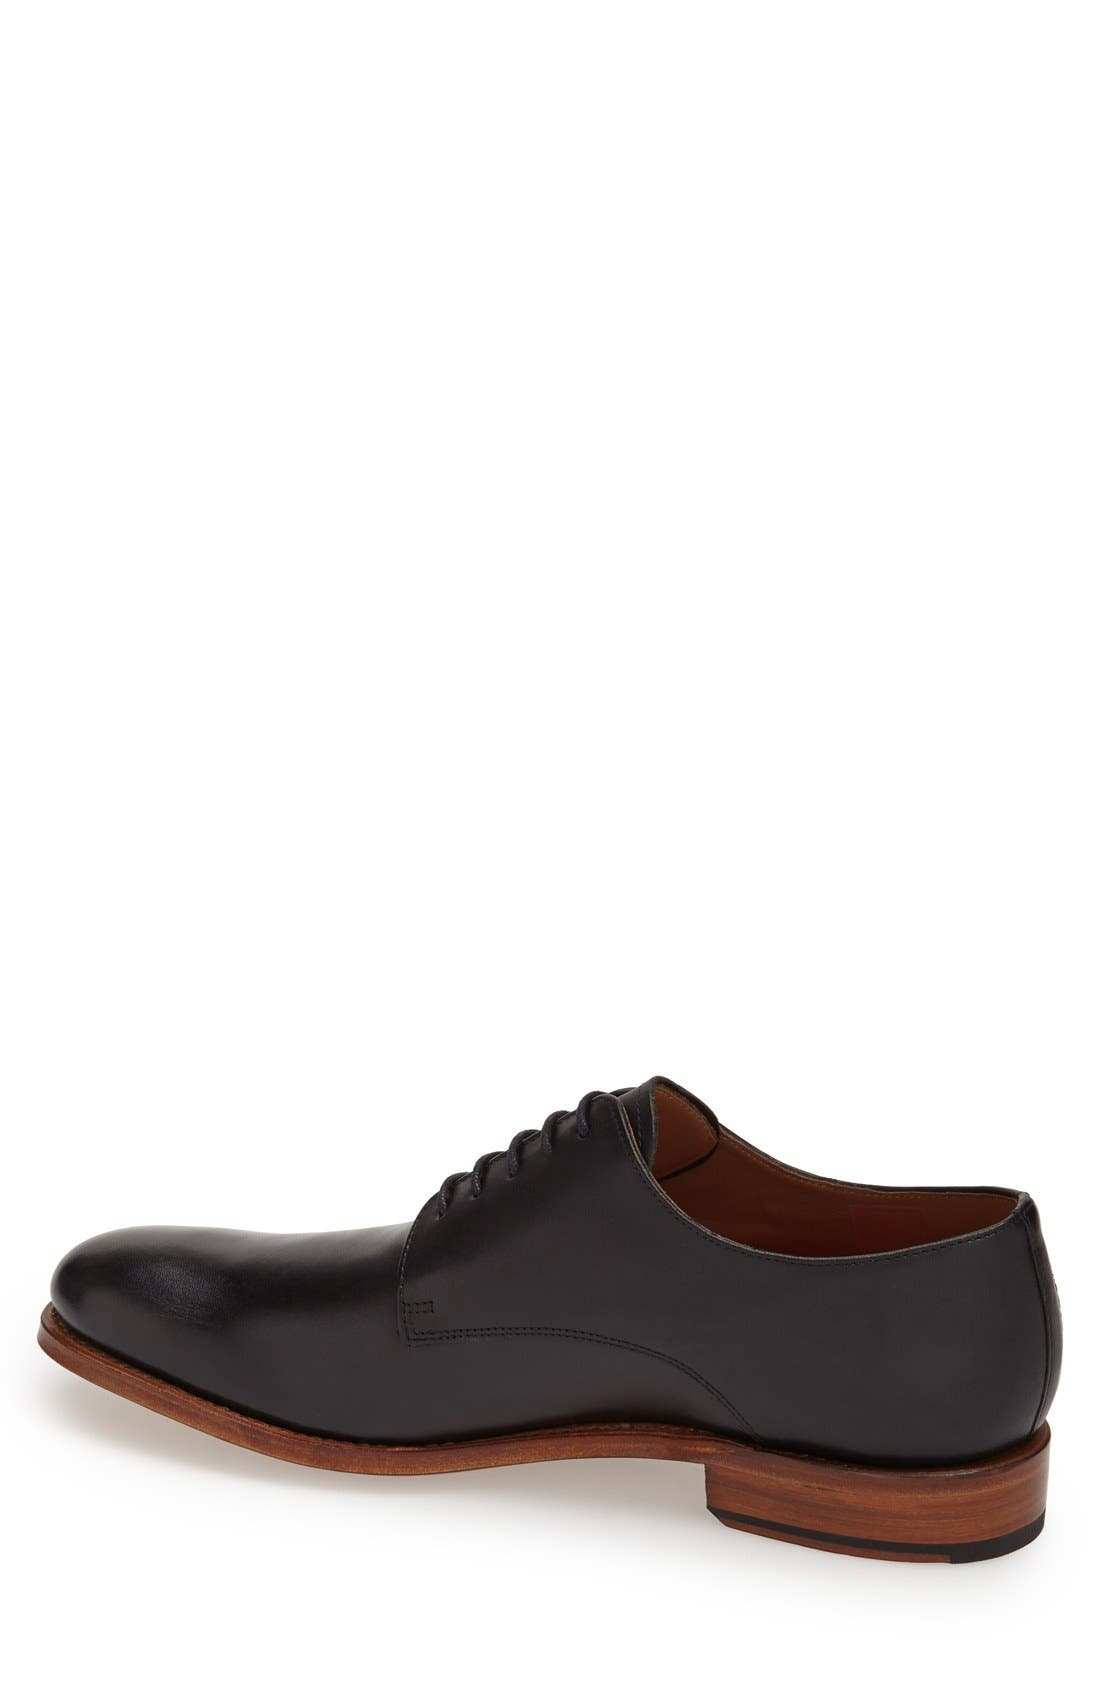 GRENSON,                             'Toby' Leather Plain Toe Derby,                             Alternate thumbnail 4, color,                             001